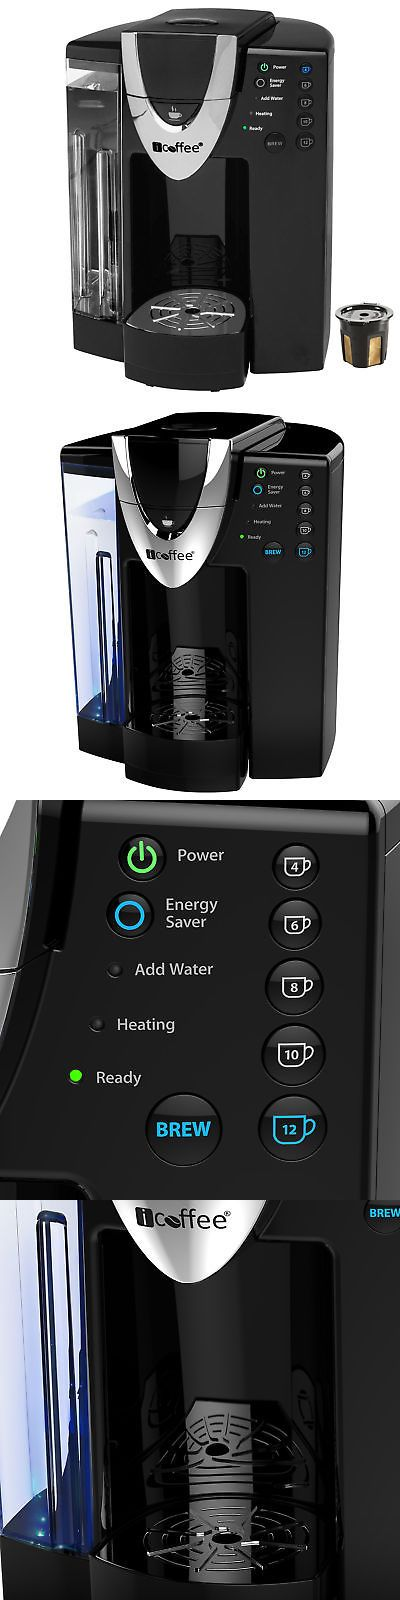 Coffee Makers Automatic 65635: Icoffee Davinci Single Serve Coffee Maker With Reusable Kcup And Spin Brew Tech -> BUY IT NOW ONLY: $64.2 on eBay!